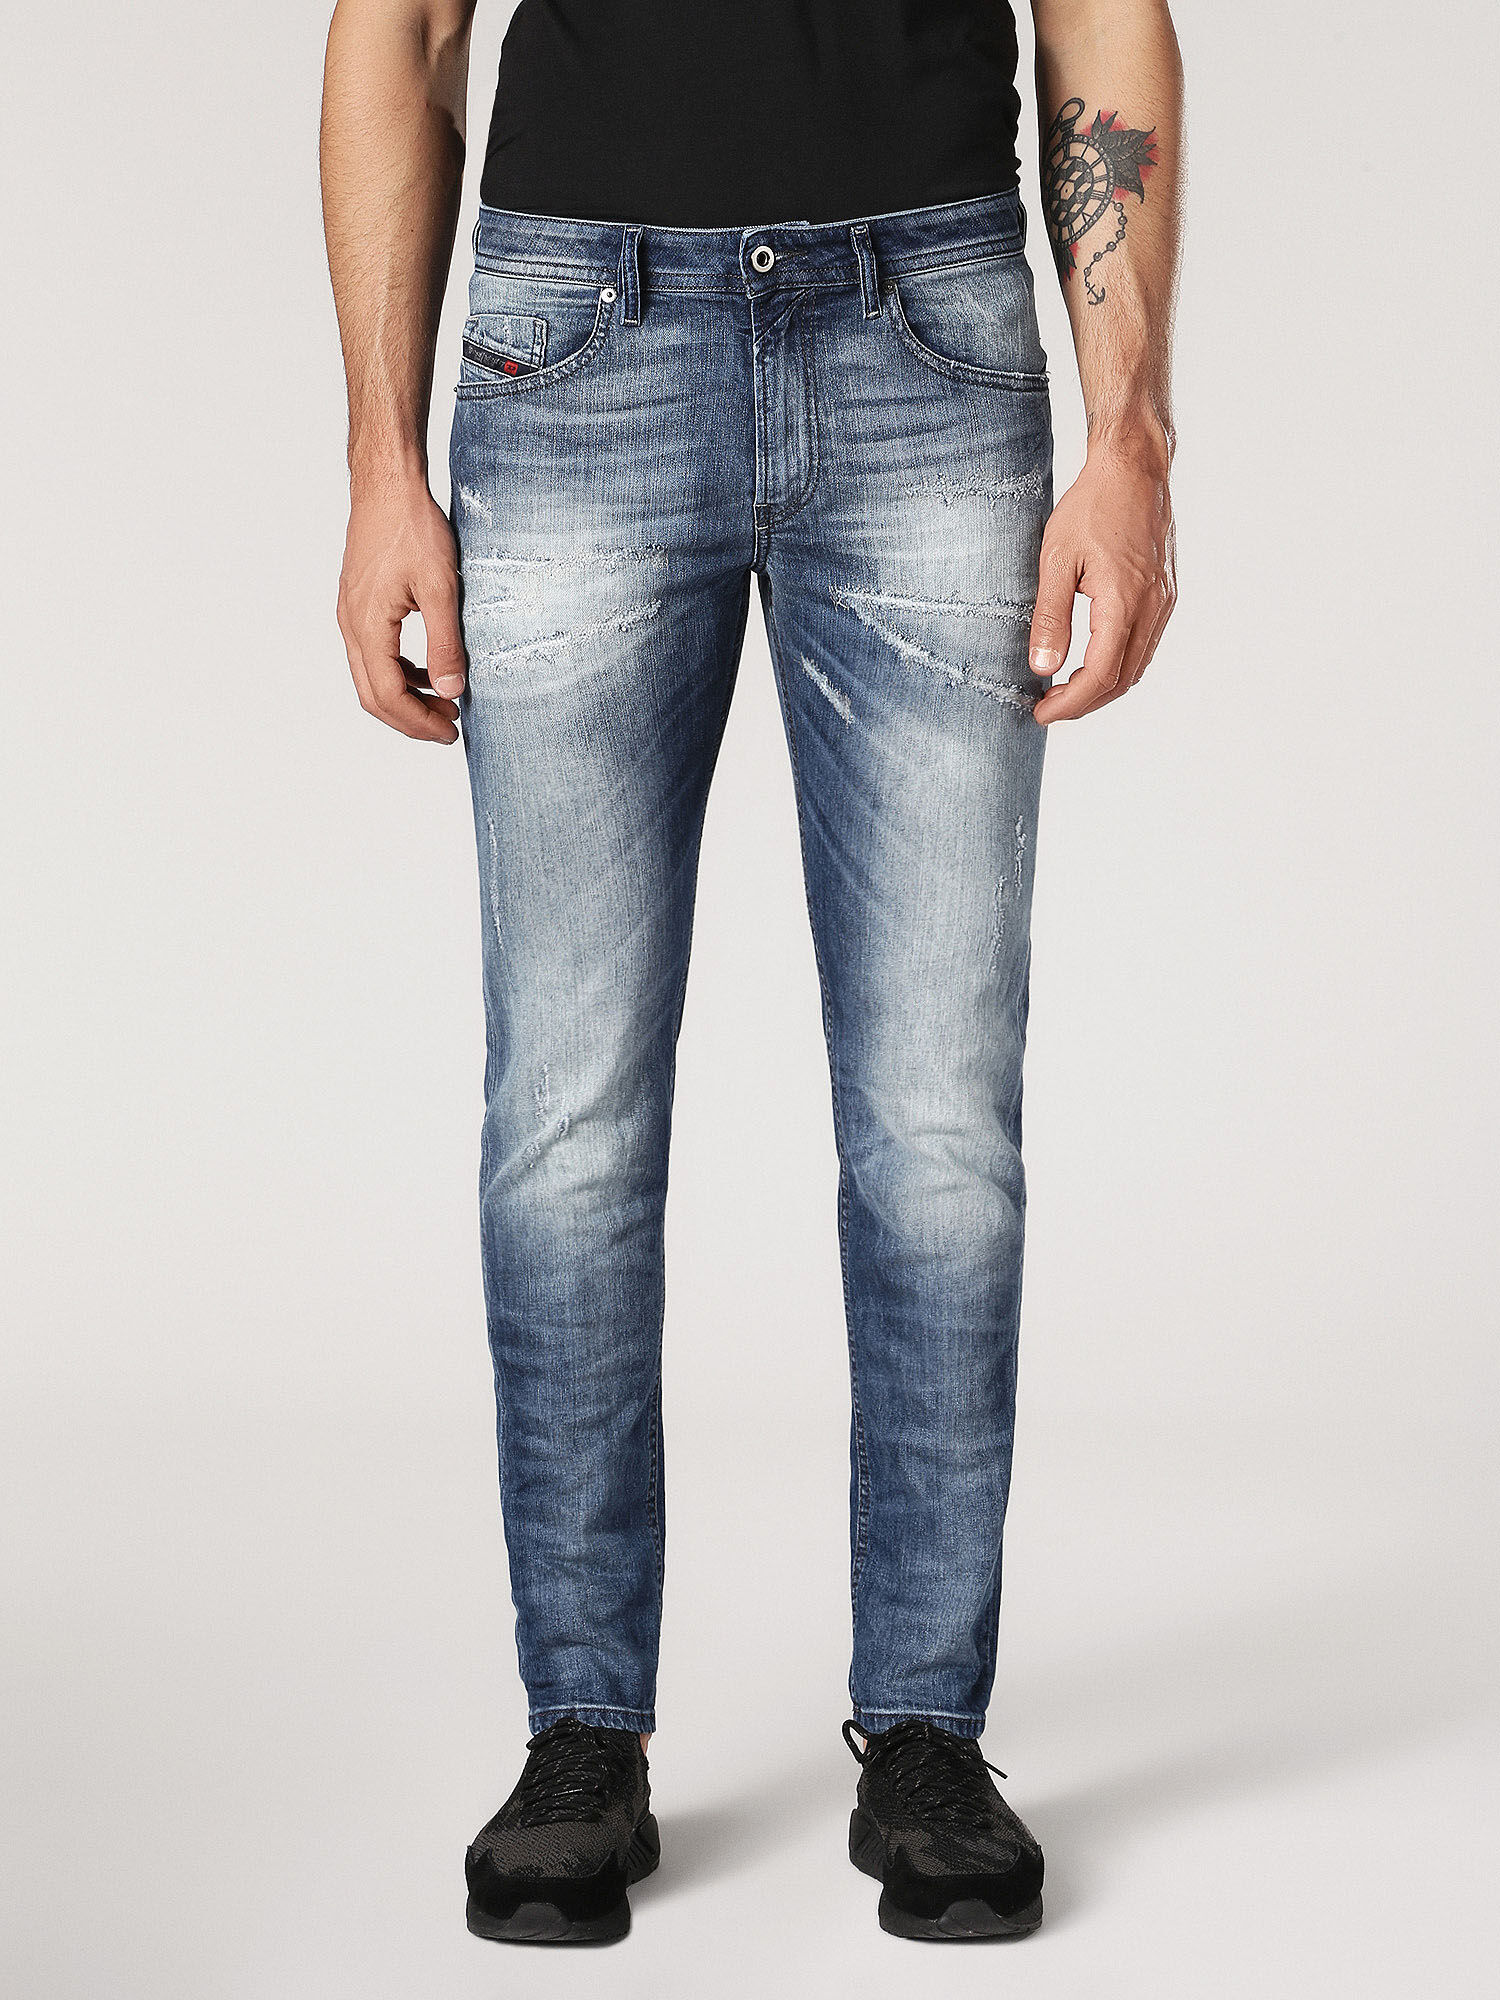 Jeans On Sale, Blue Denim, Cotton, 2017, 29 30 36 Diesel